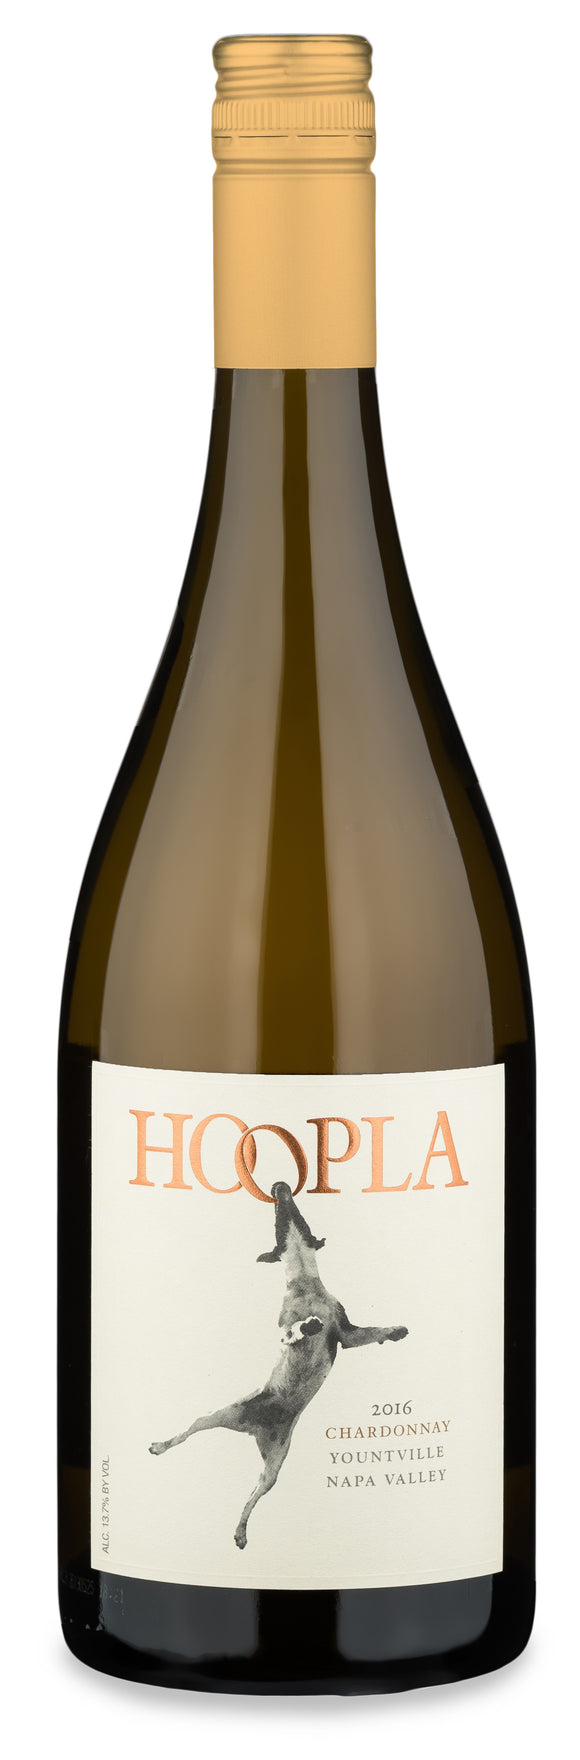 Hoopla Chardonnay, Napa Valley, USA